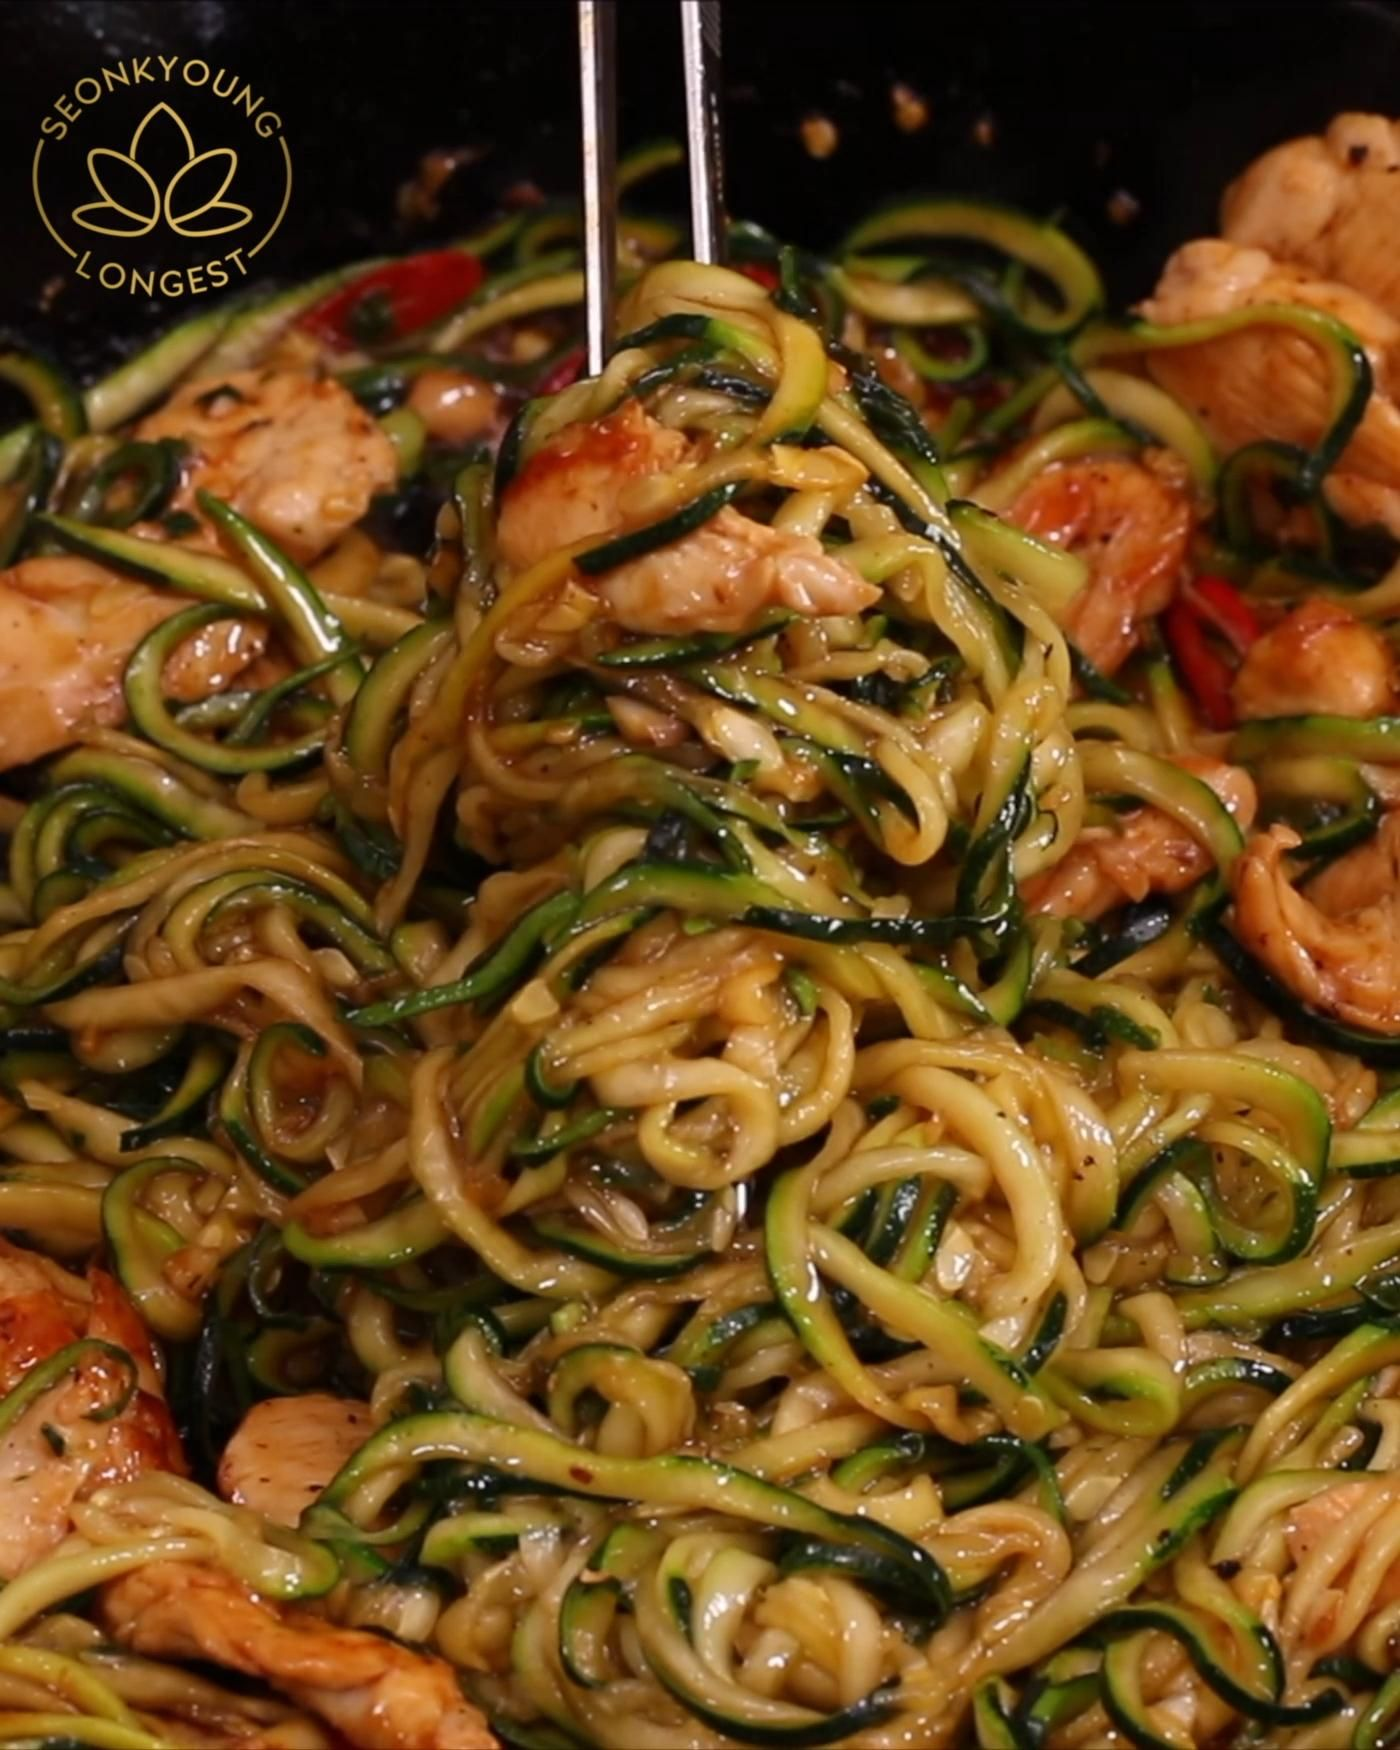 GARLIC CHICKEN ZUCCHINI NOODLES STIR FRY RECIPE